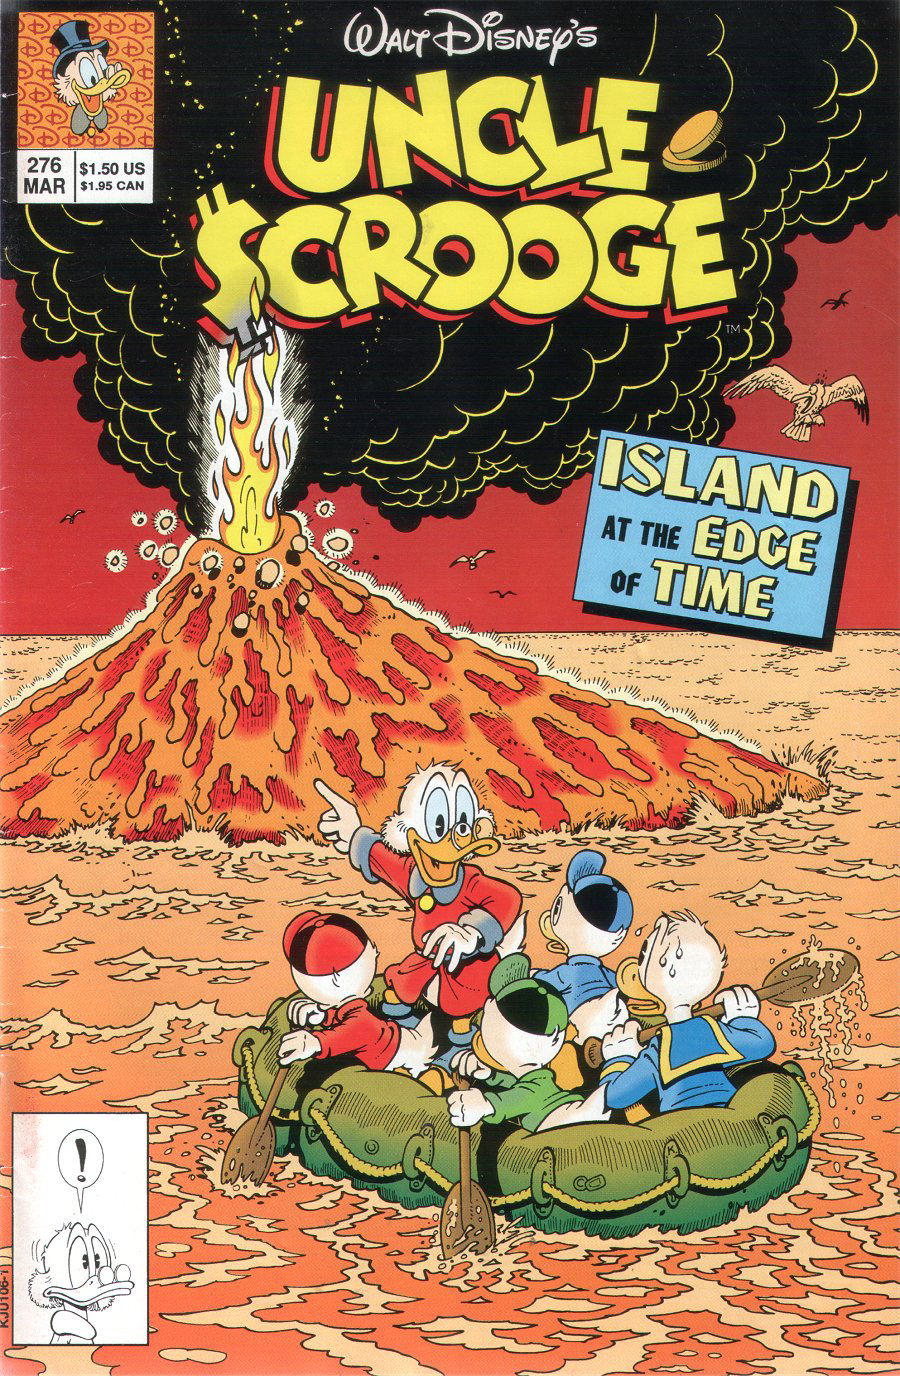 Read online Uncle Scrooge (1953) comic -  Issue #276 - 1